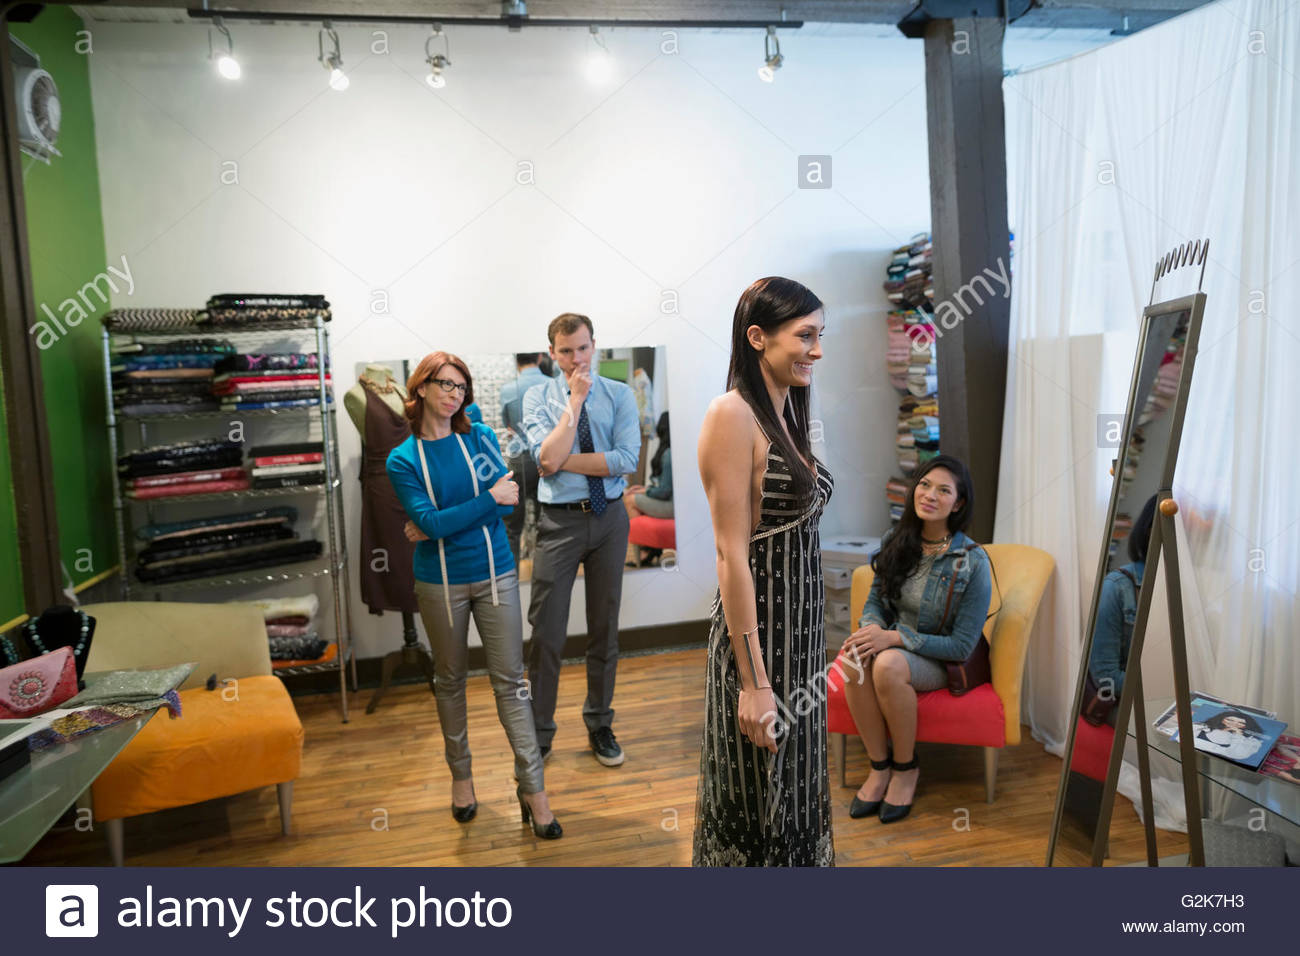 Dressmakers watching customer trying on dress - Stock Image